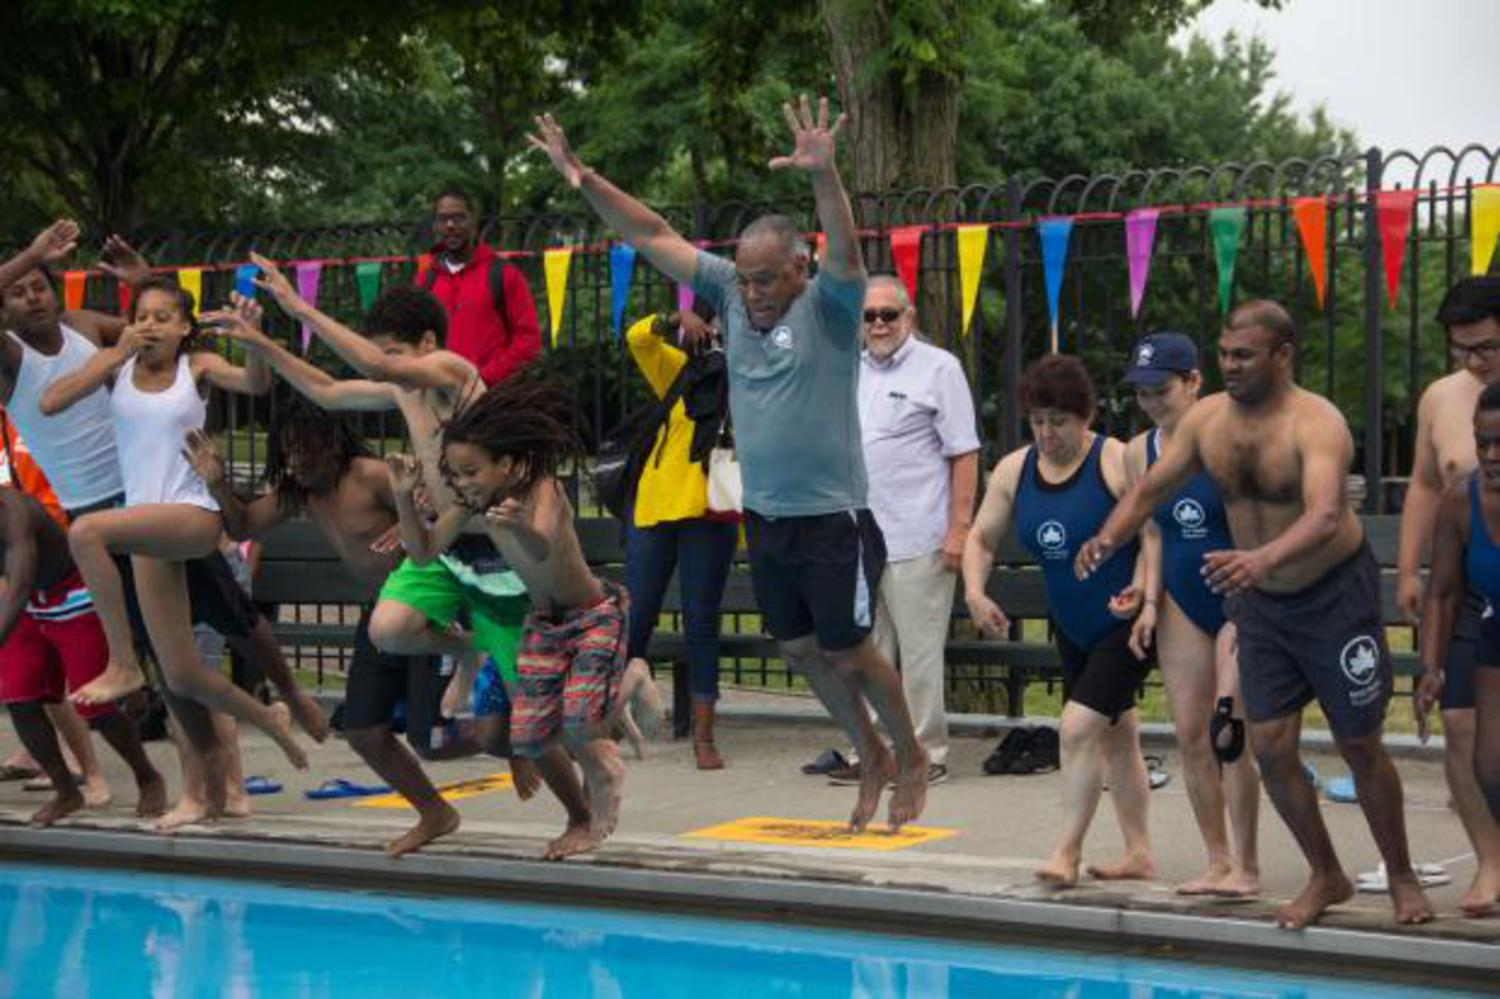 Parks Commissioner Mitchell Silver kicked off the city's public outdoor pool season by taking a dip in Faber Pool.